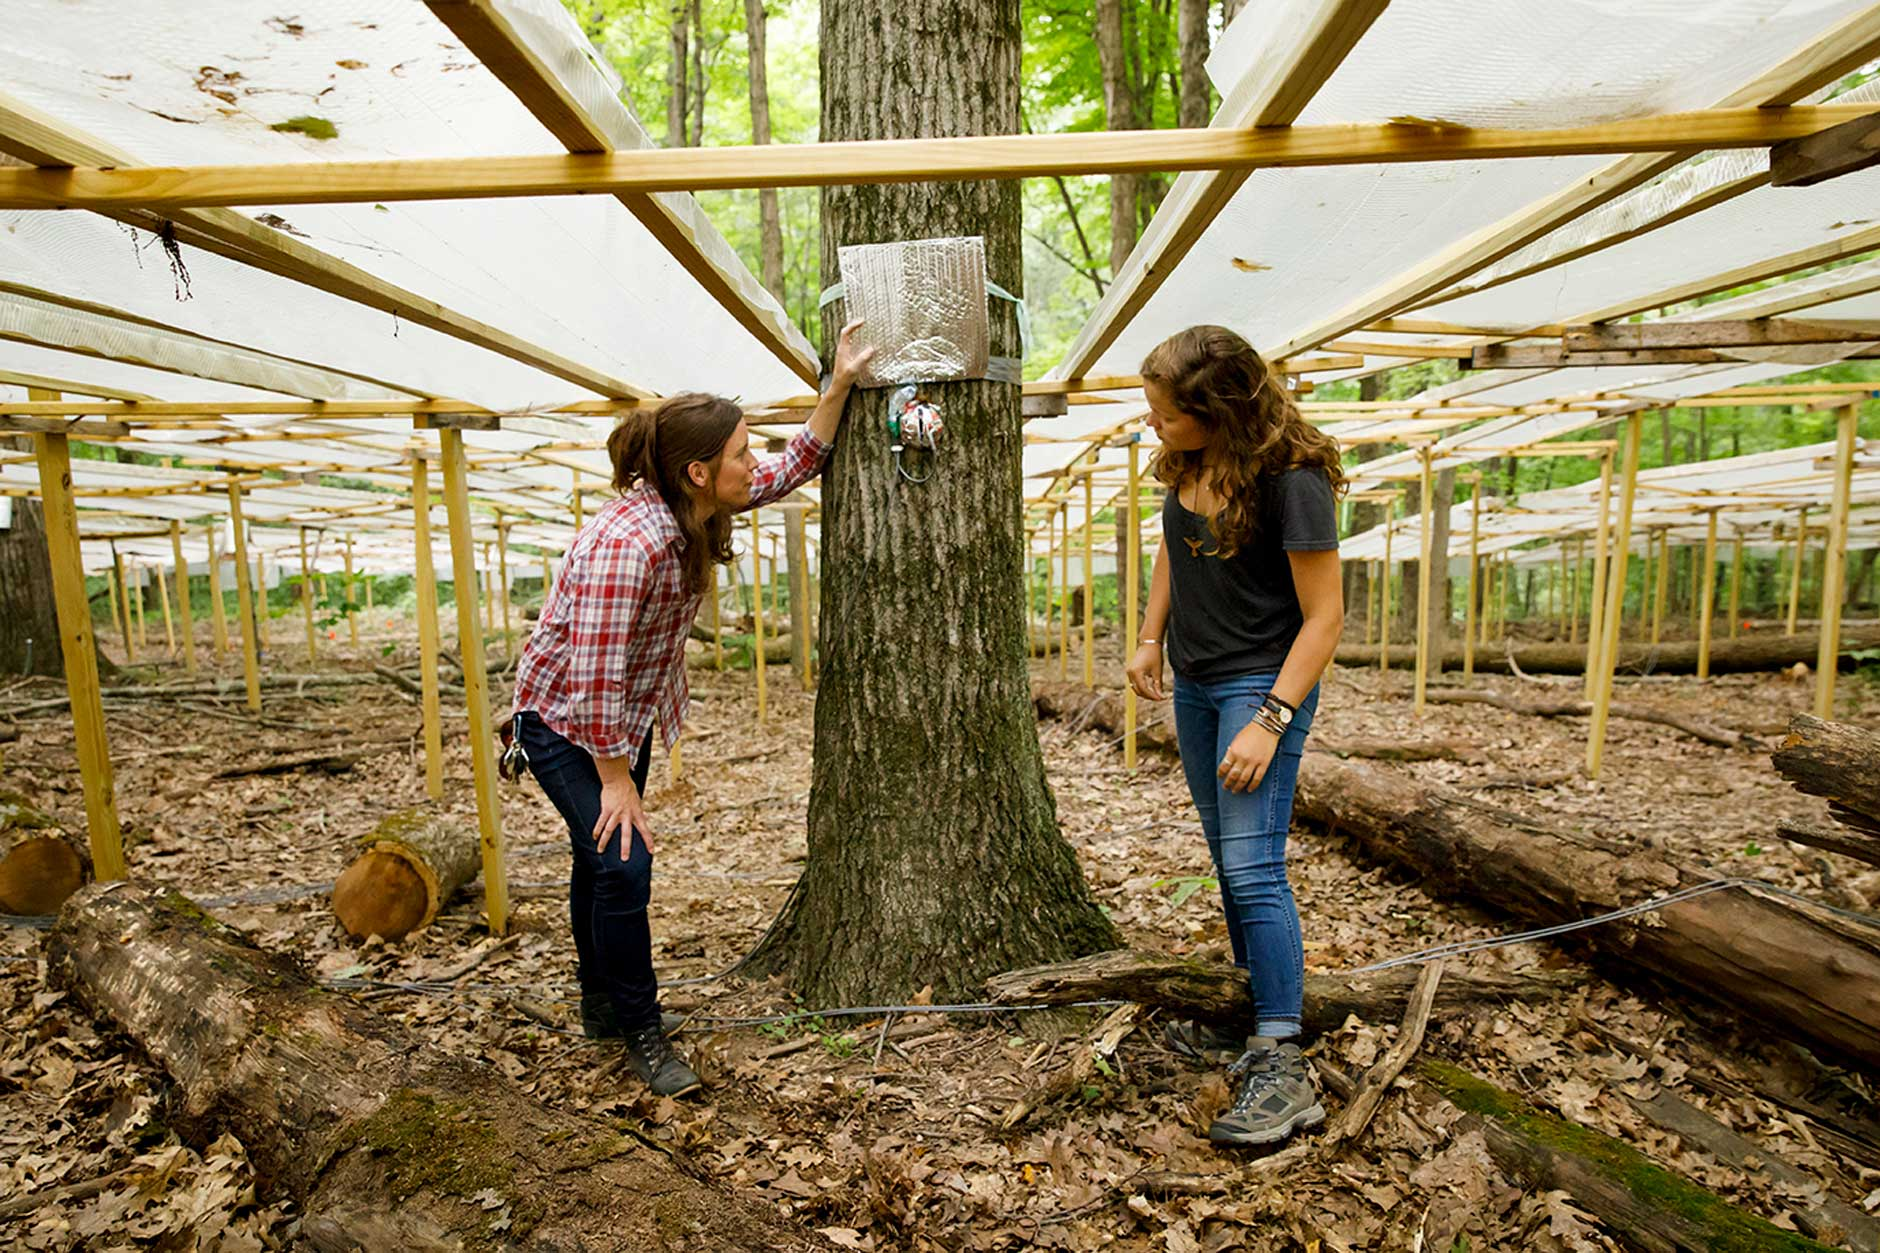 Indiana University Assistant Professor Kim Novick, left, and senior Lily Young inspect a sap flux probe on a tree at the Indiana University Research and Teaching Preserve at Griffy Woods on Monday, June 25, 2018. Researchers are using the probes to study water flow through trees. (James Brosher/IU Communications)